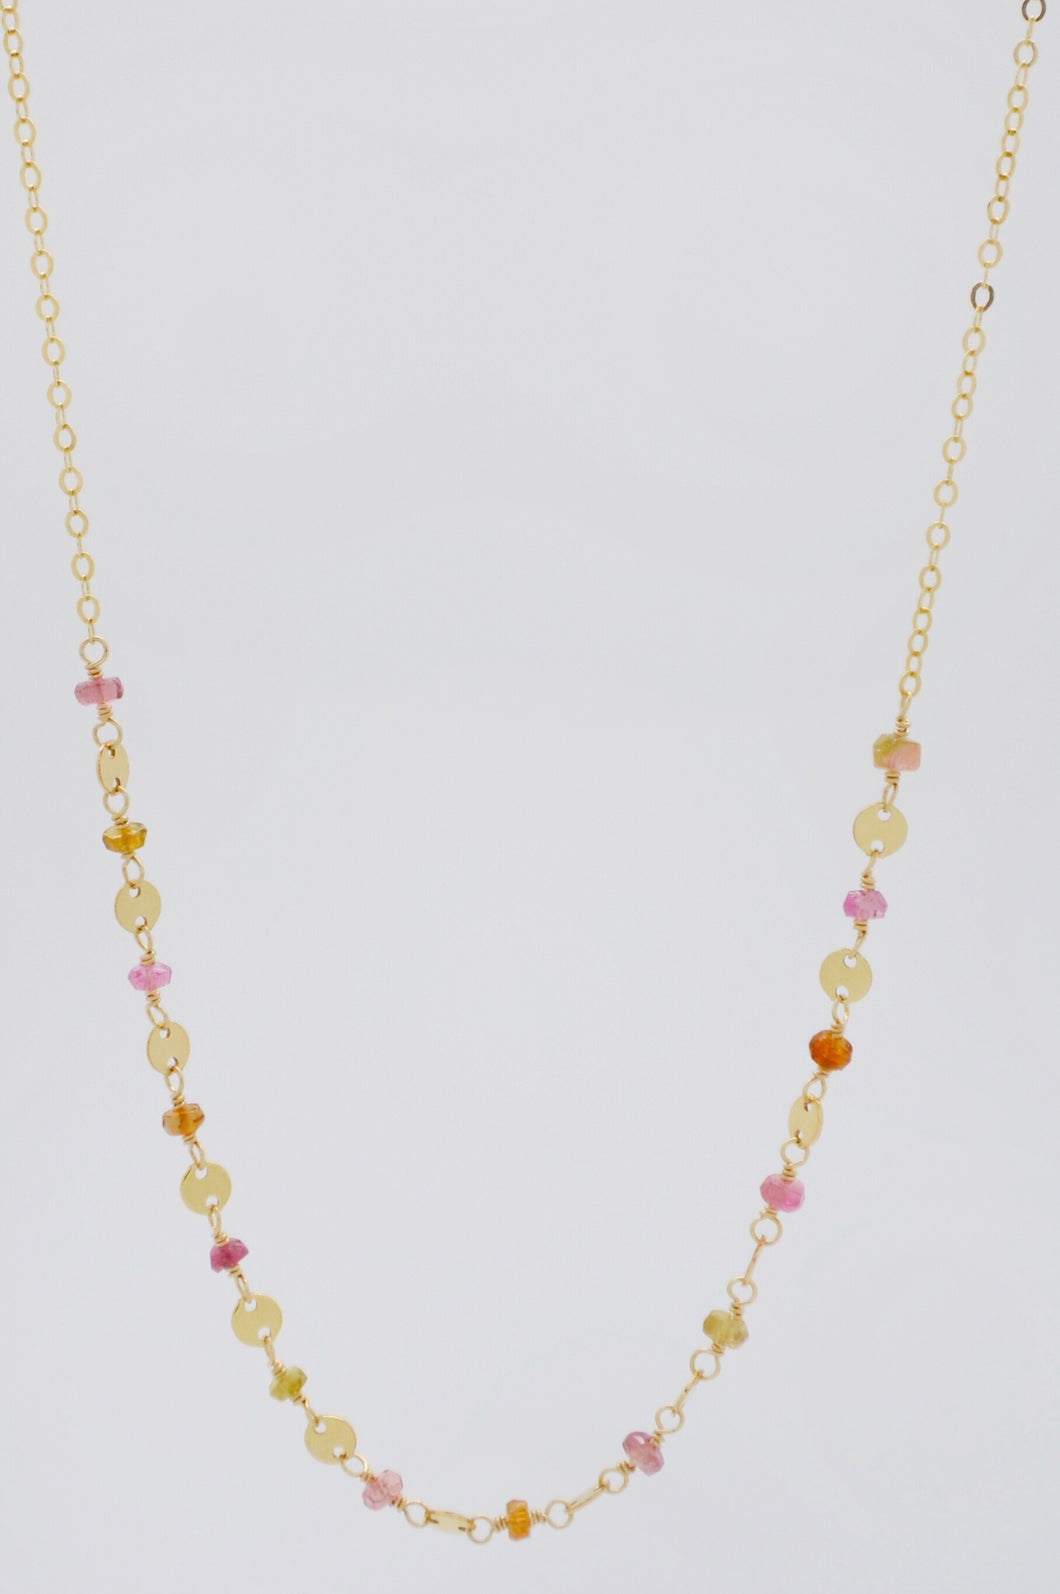 The Sunset Hues Tourmaline Necklace